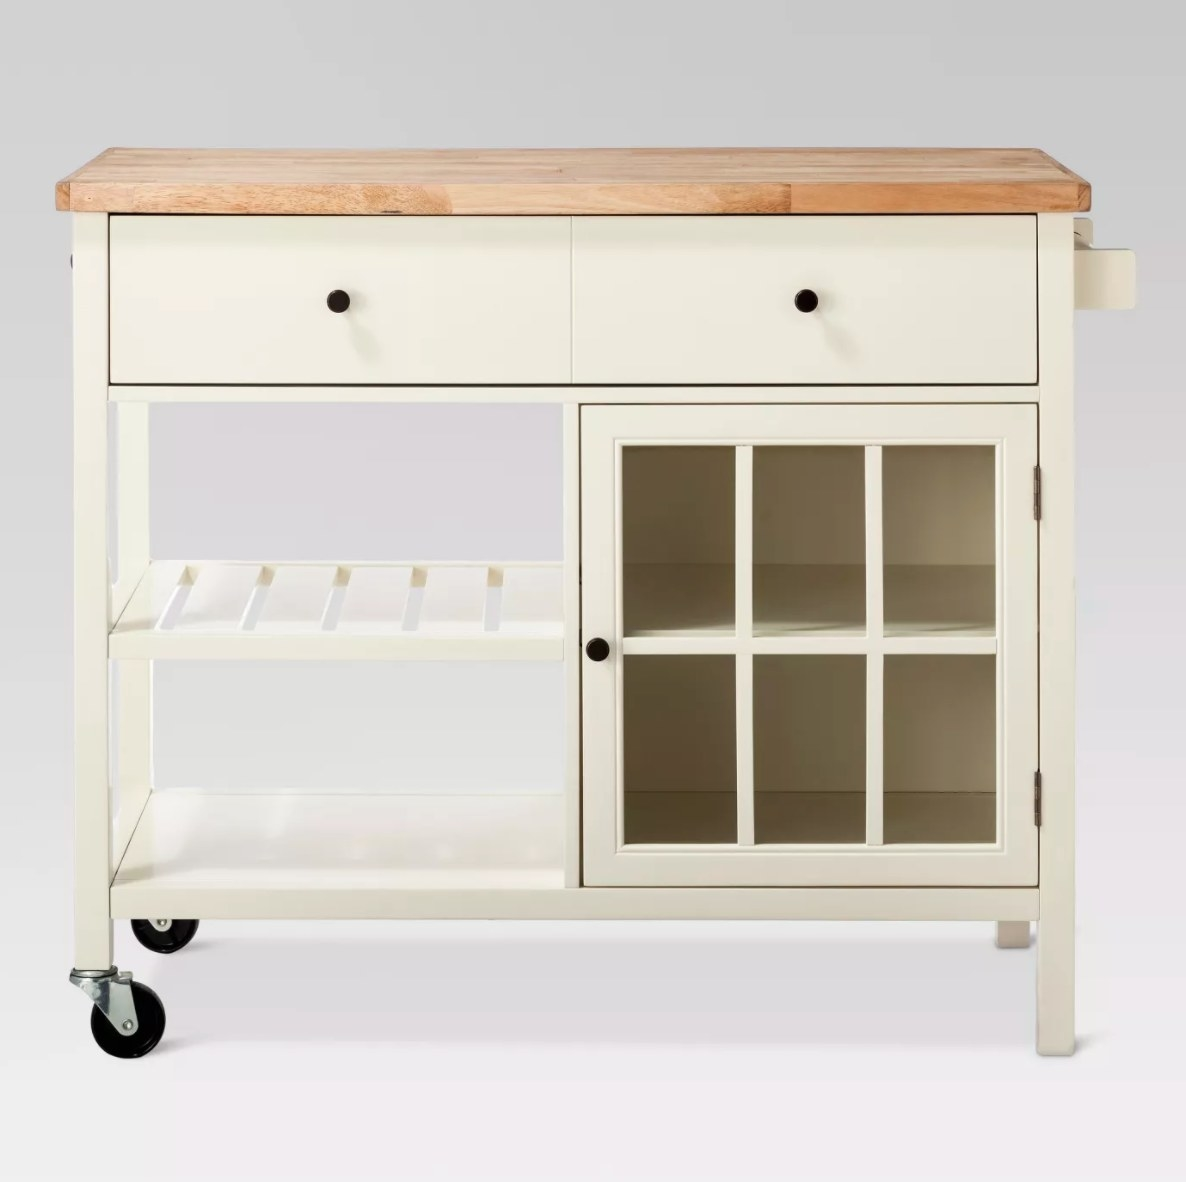 The wood top kitchen island in shell